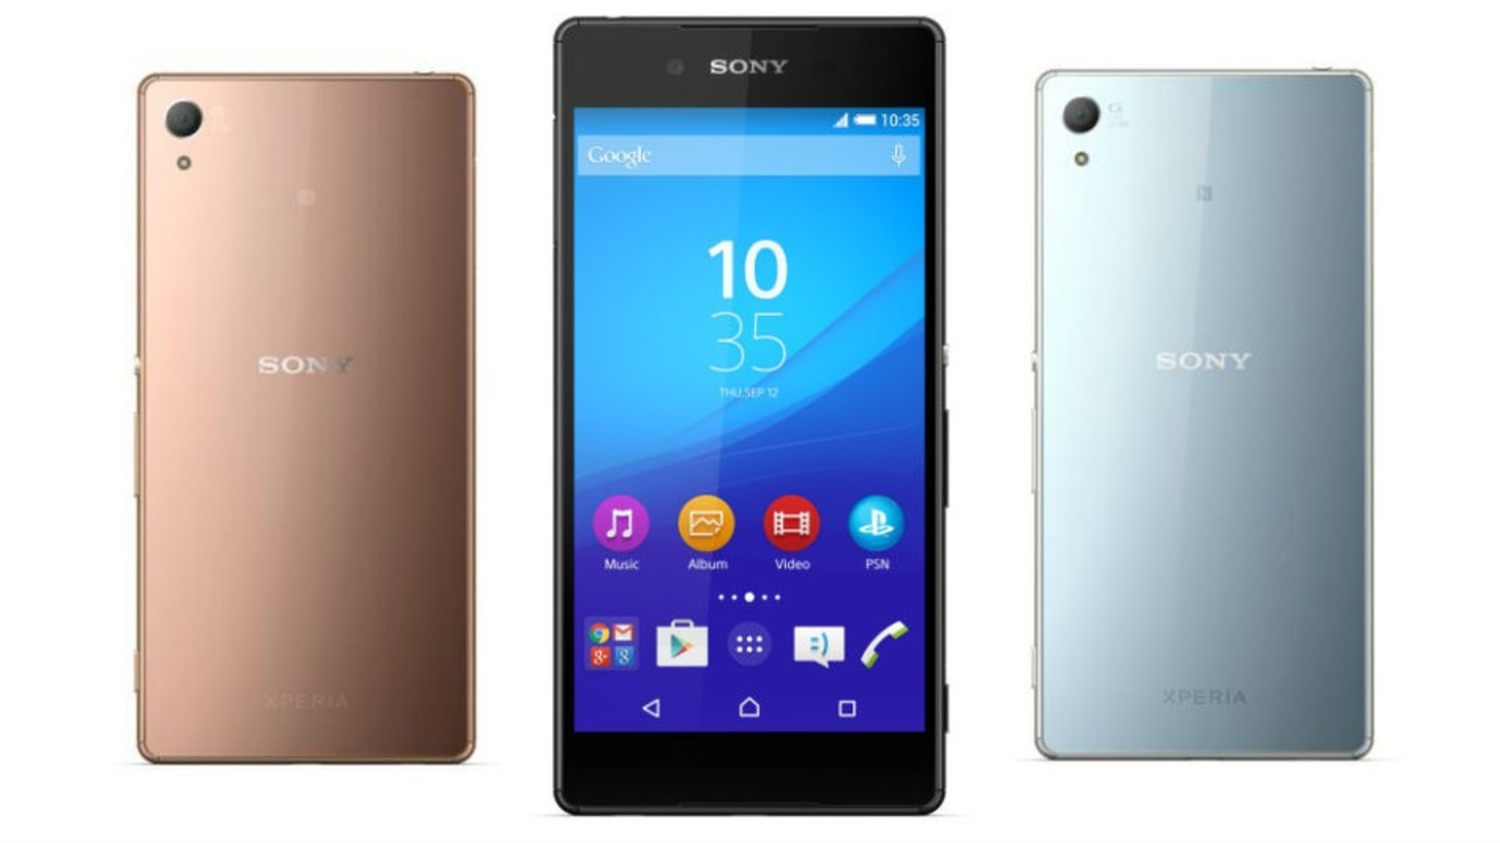 The Xperia Z4 Receives No Applause